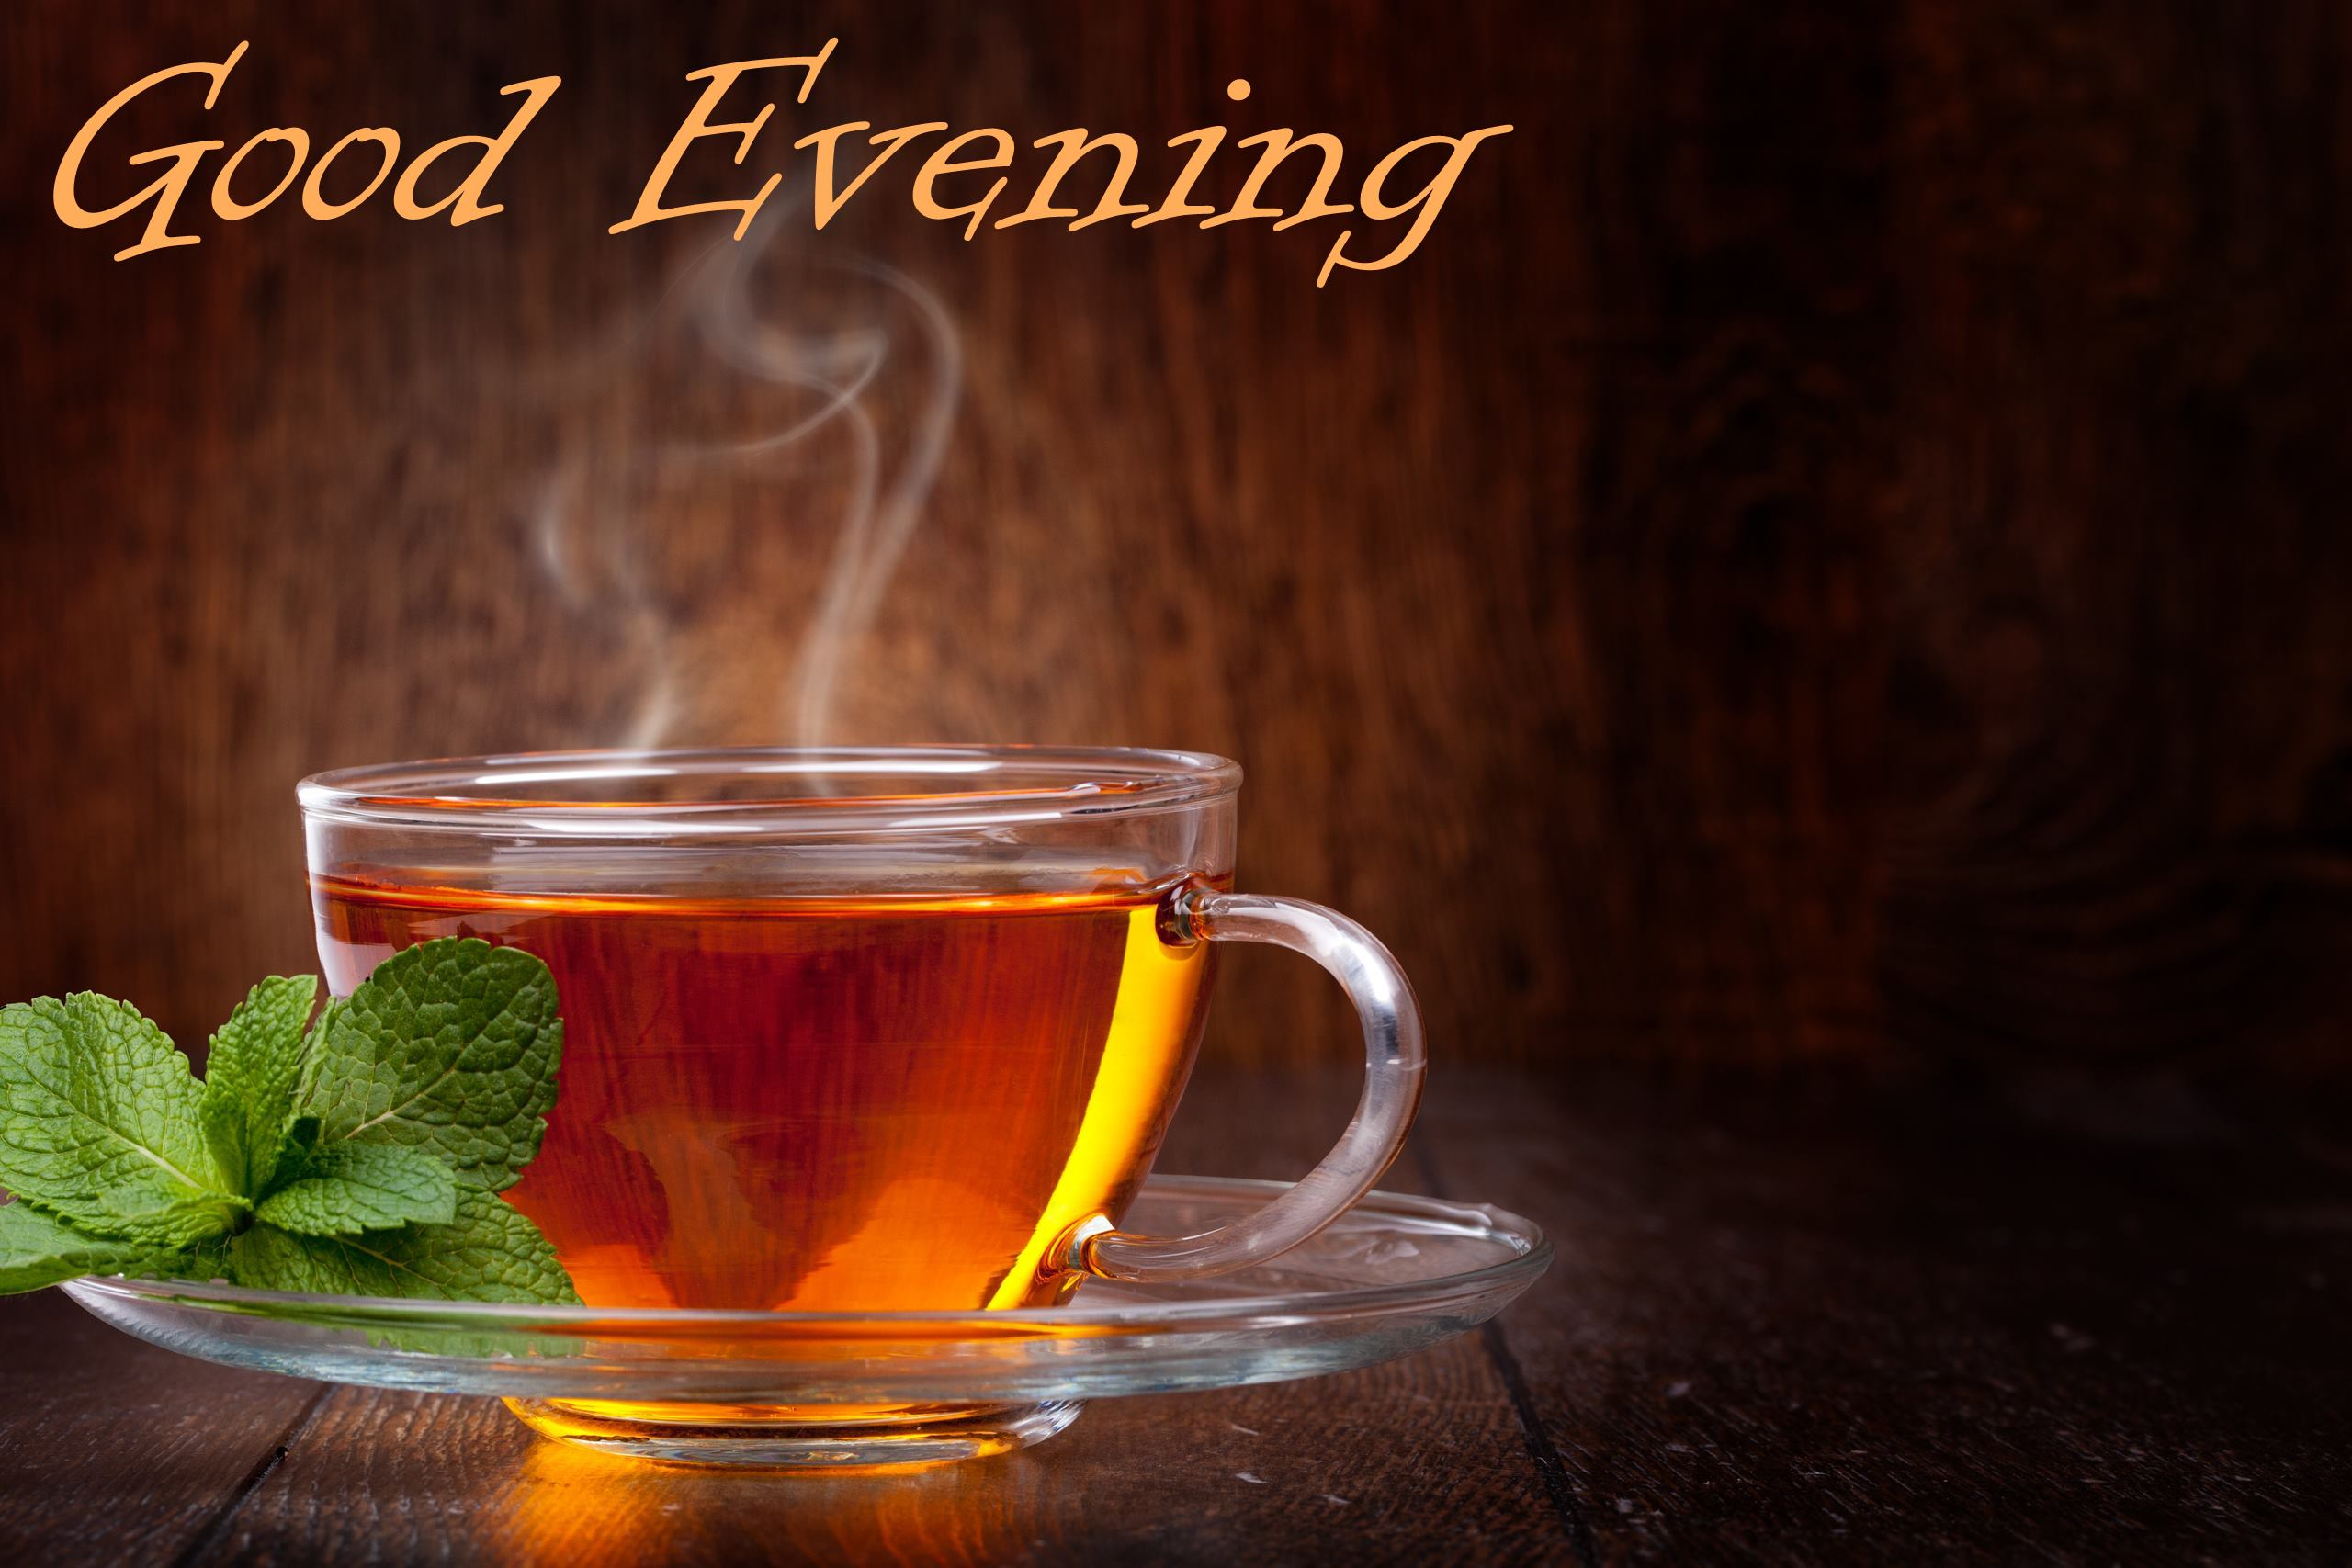 Good Evening With Green Tea